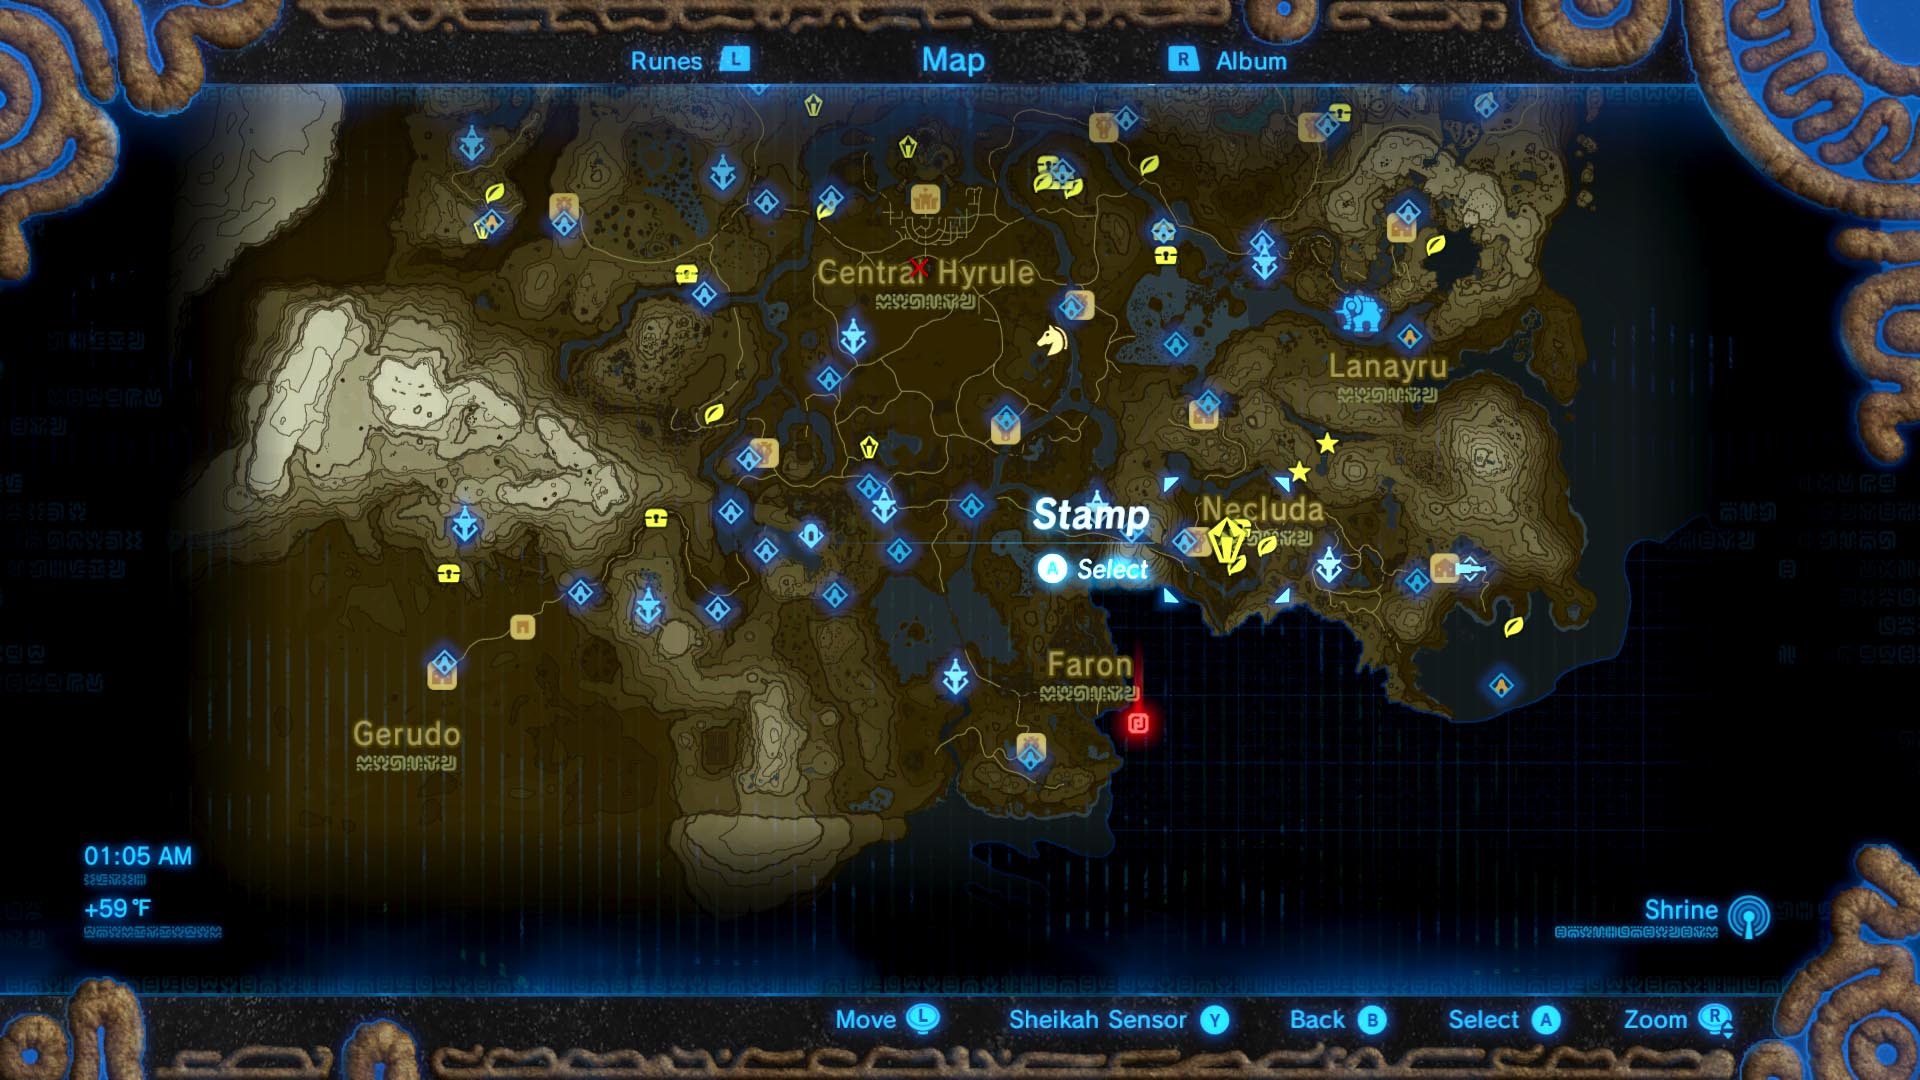 Breath of the wild guide the last memory polygon 1 of 6 gumiabroncs Choice Image